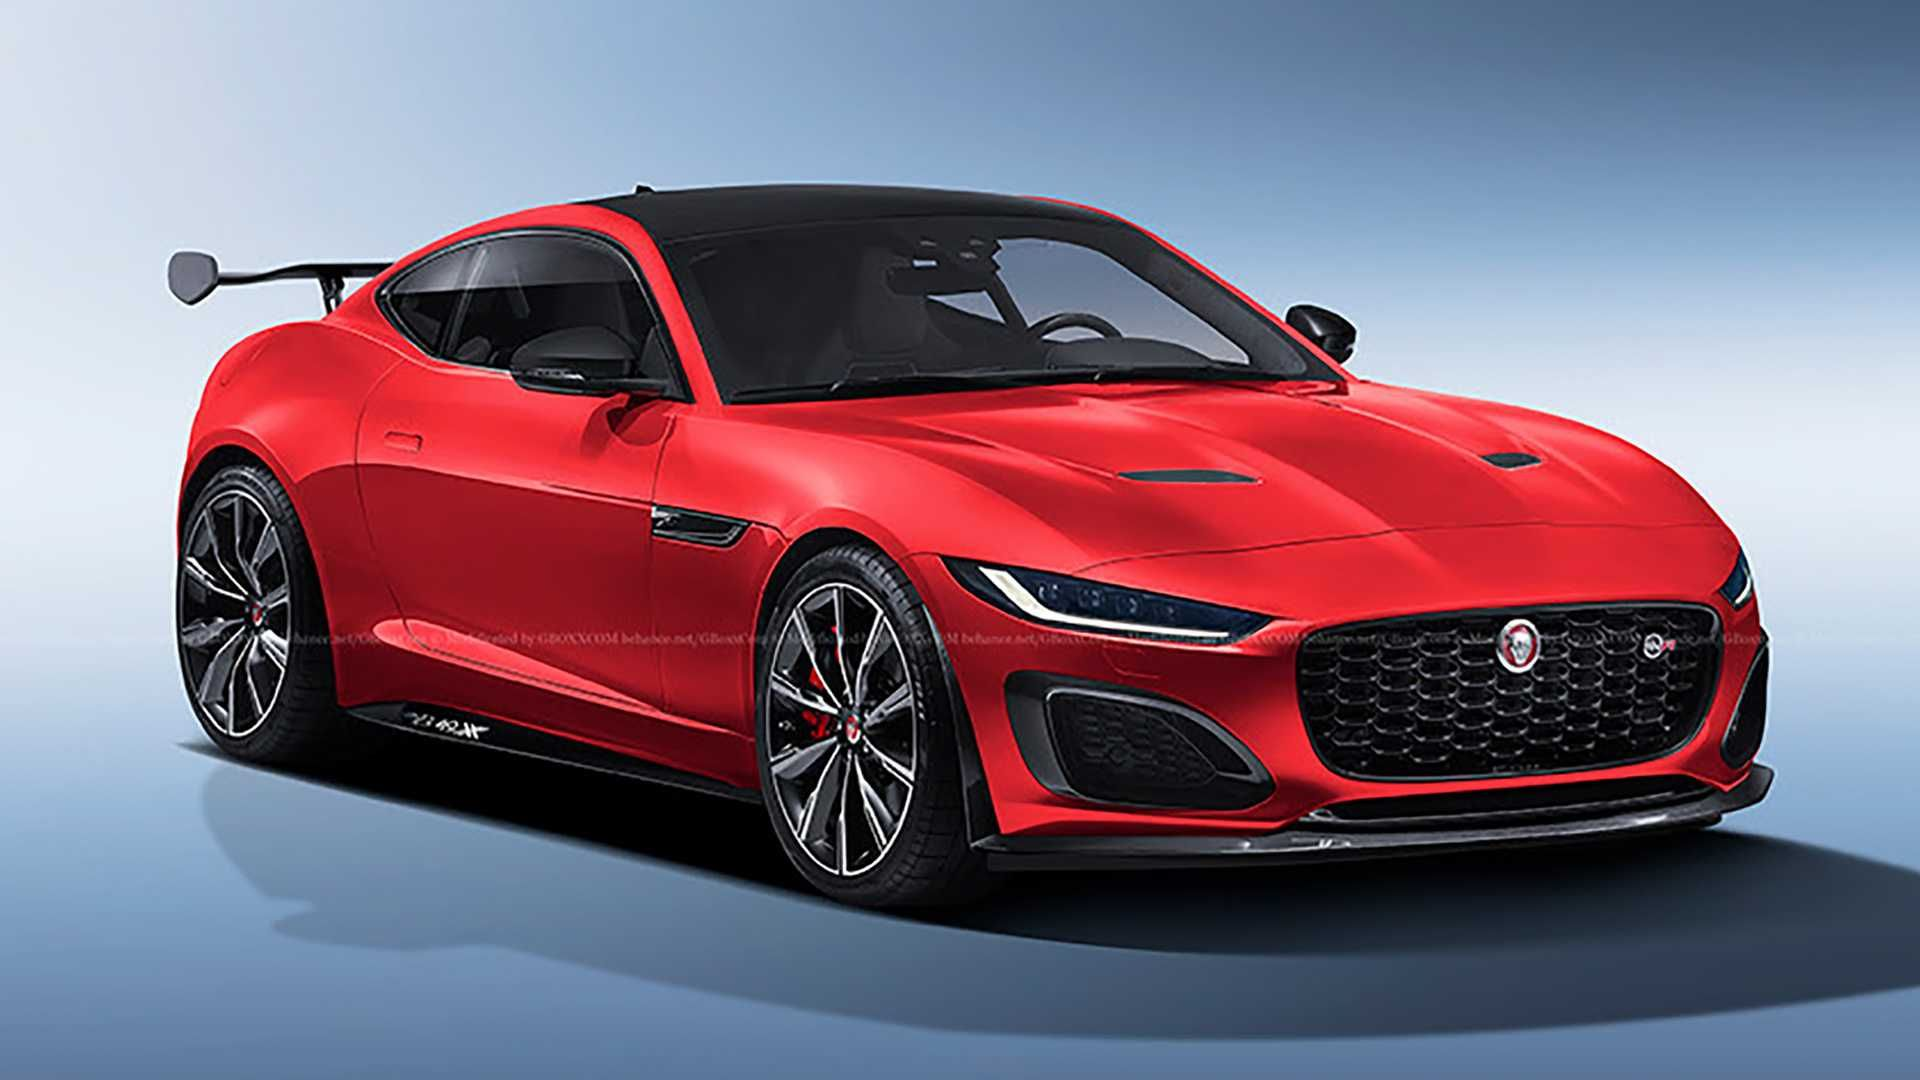 Refreshed Jaguar F Type Svr Rendered Sadly Not Happening Jaguar F Type Jaguar Xe Jaguar